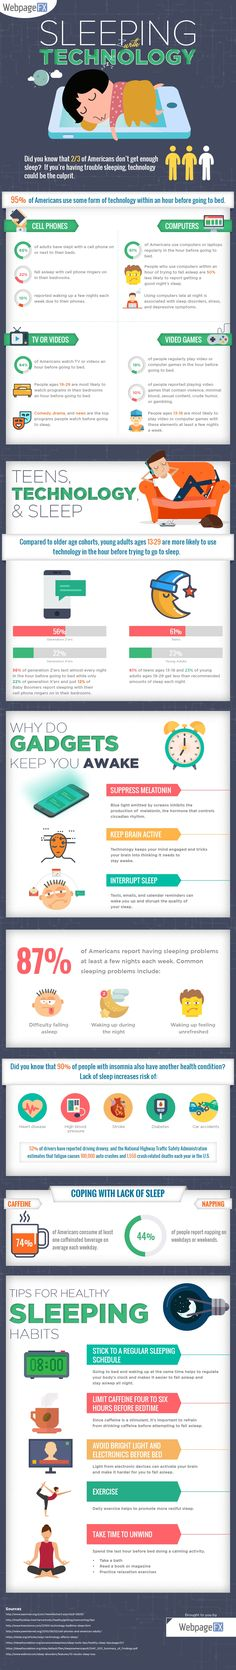 The Harmful Effects of Sleeping With Technology [Infographic] - the way technology not only impacts your sleep quantity and quality, but also causes addiction is a concern we should address earlier than later